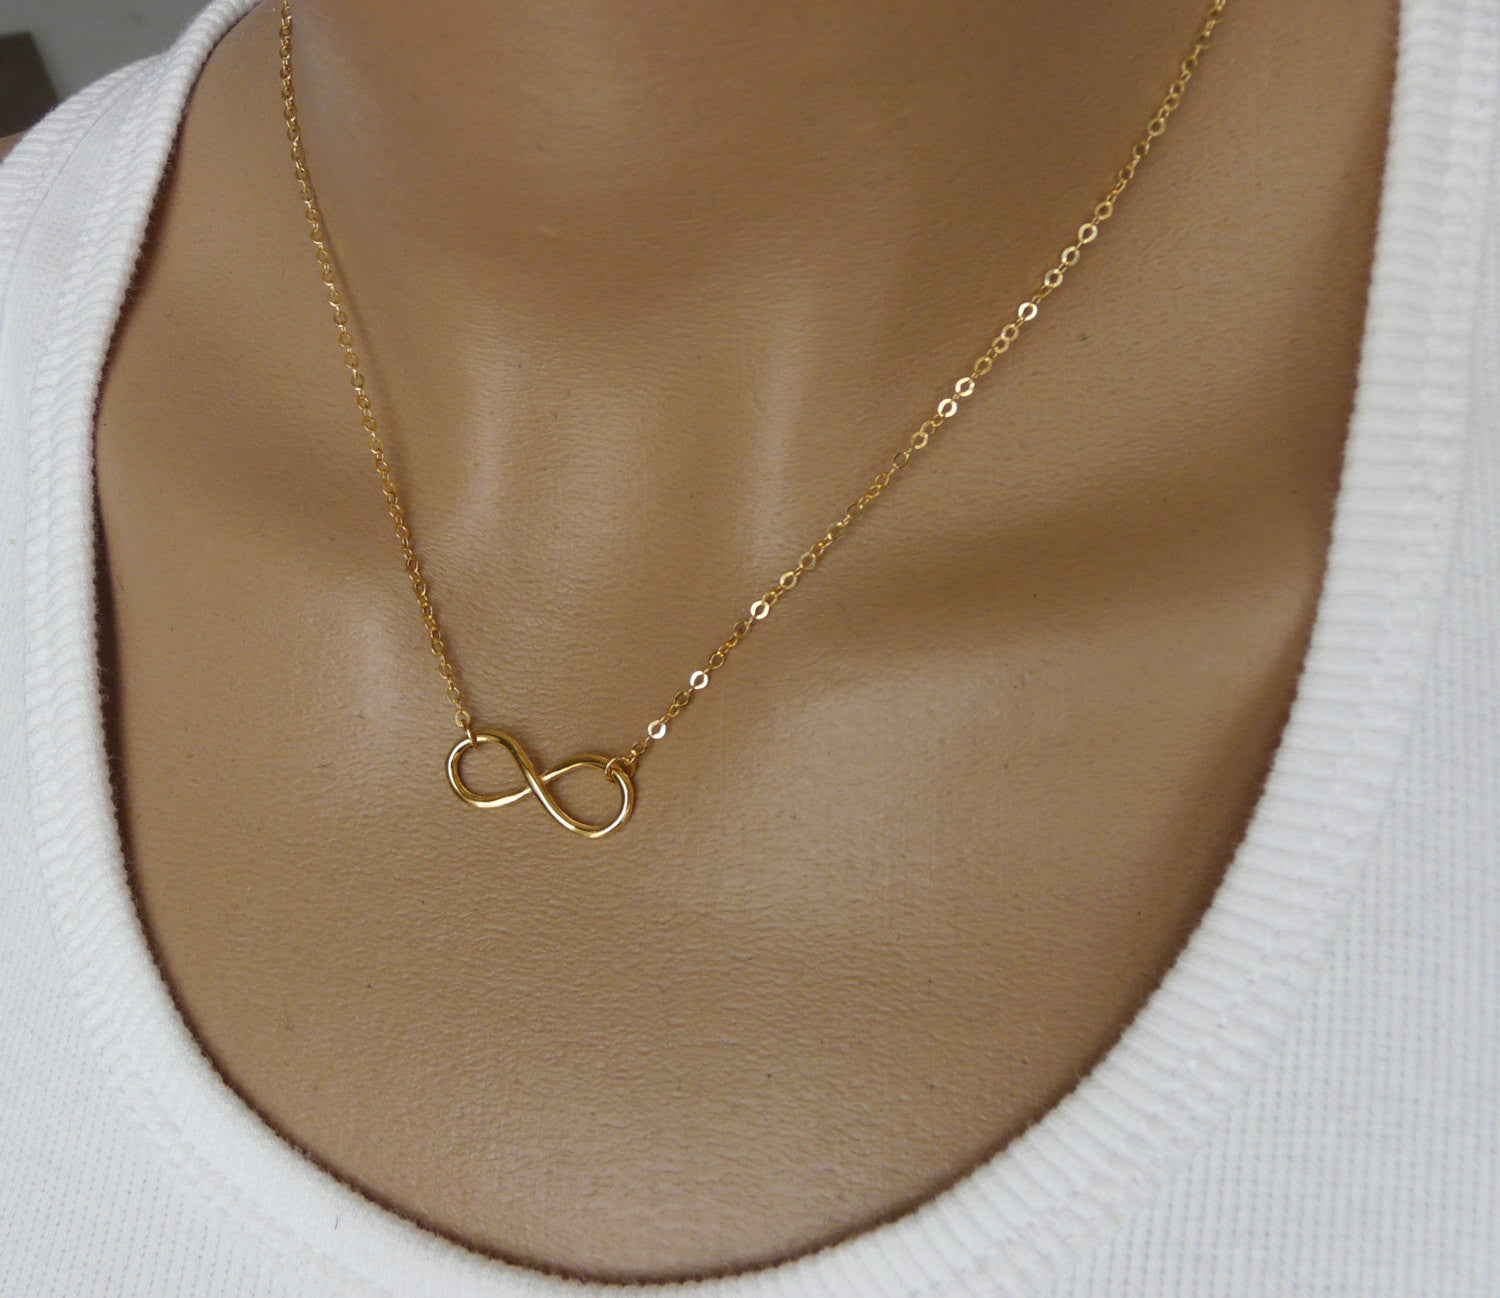 Infinity necklace Gold filled - OpaLandJewelry